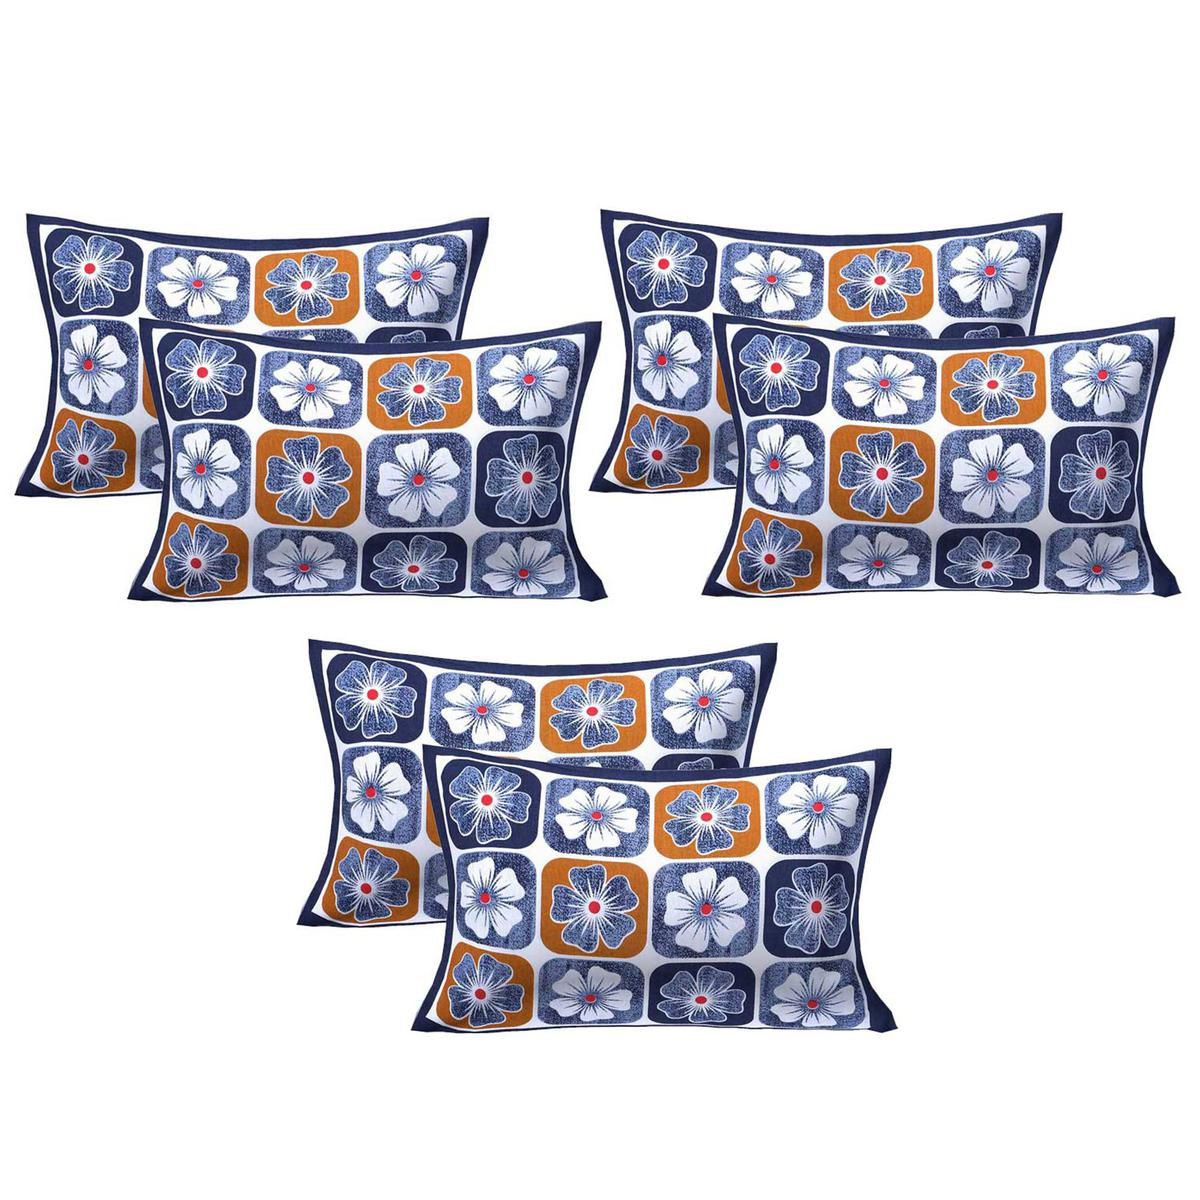 AJ Home - Multi Colored 100% Cotton Printed Pillow Covers 3 Sets (6 Pieces)